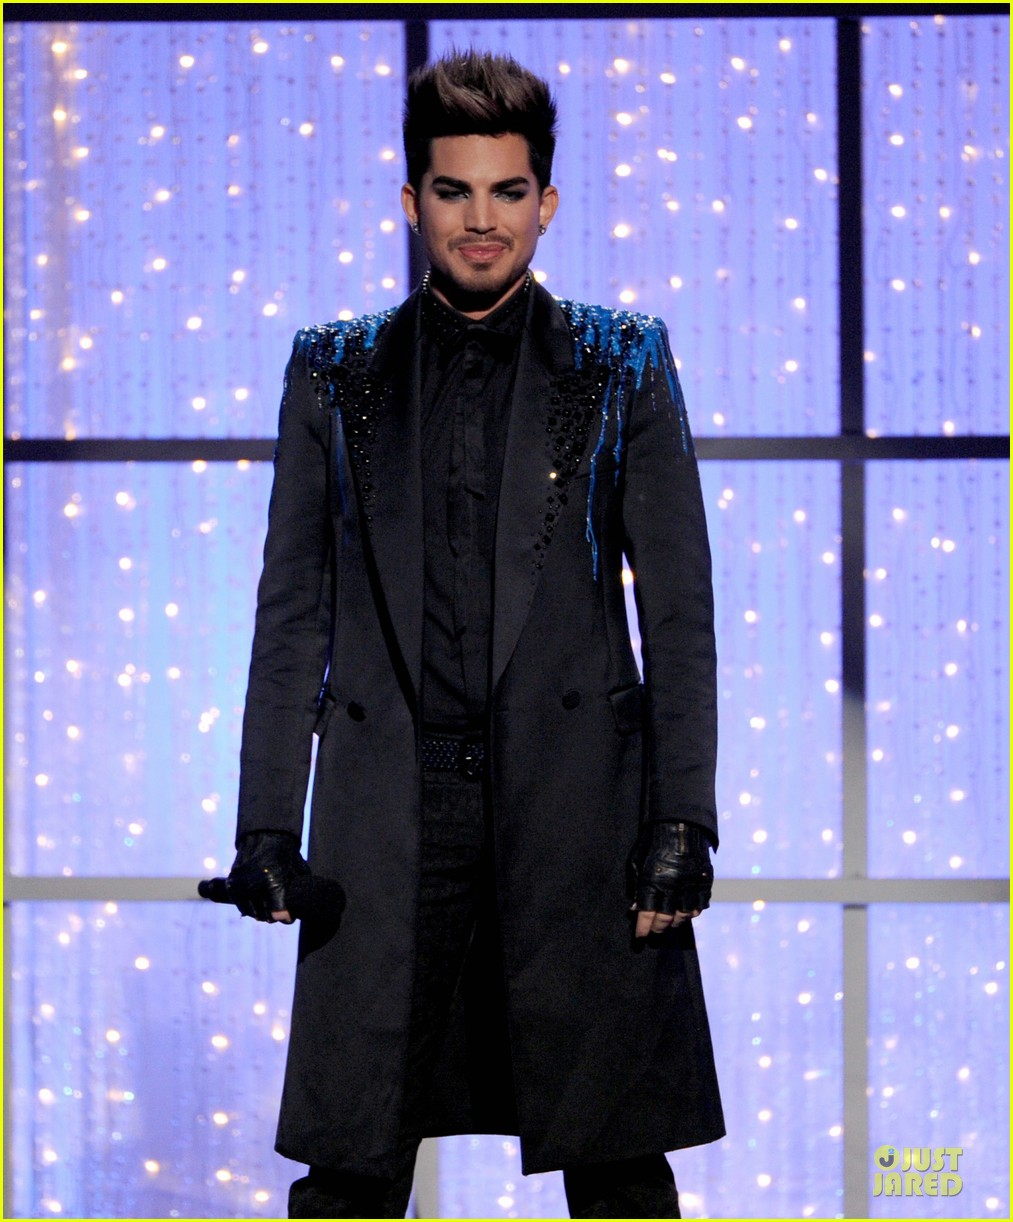 adam lambert vh1 divas performances watch now 16